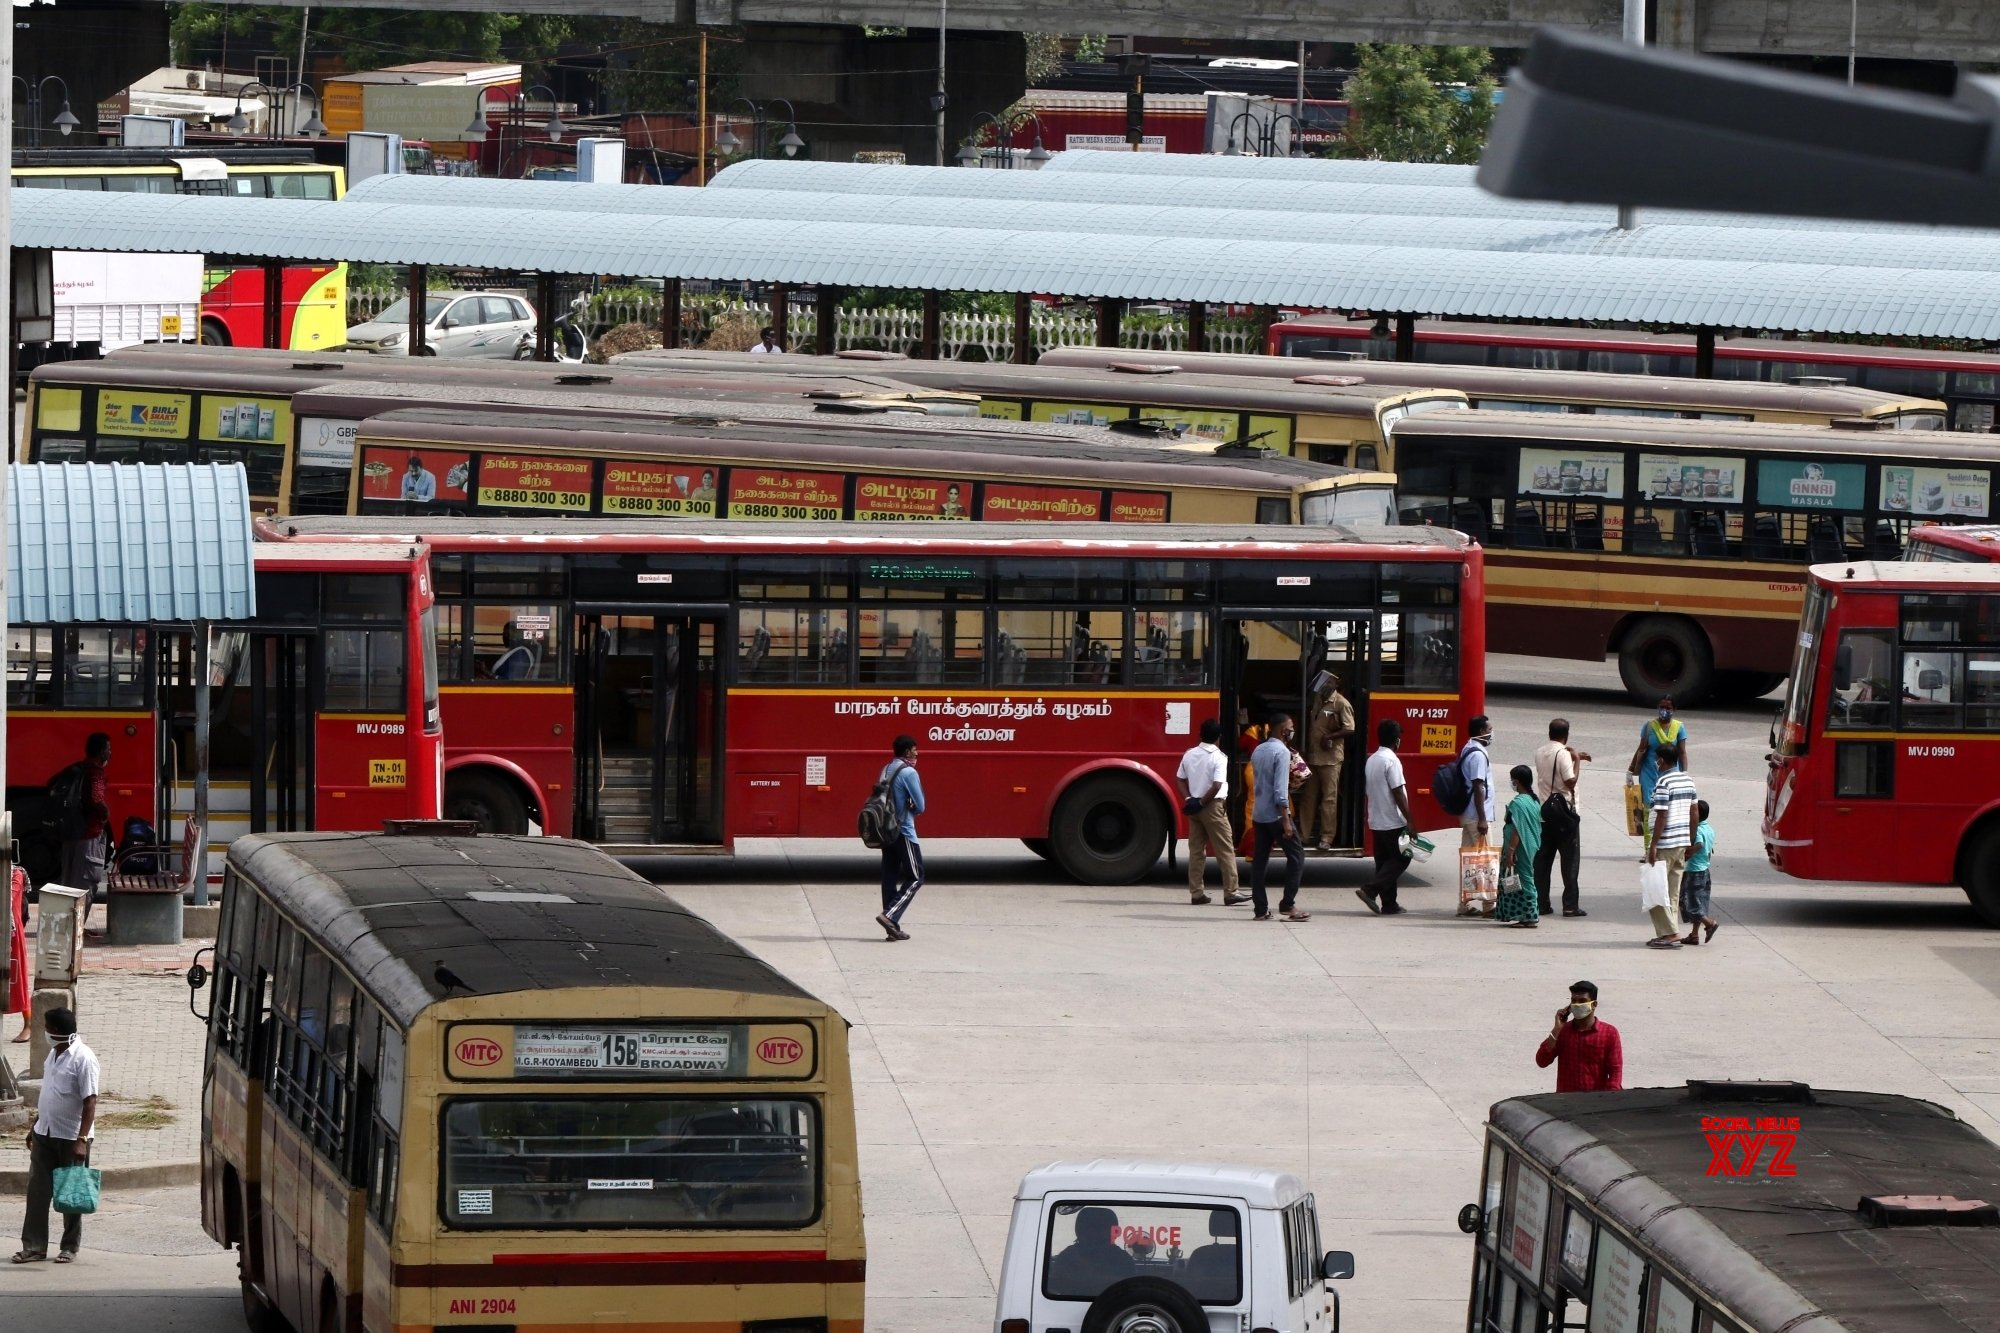 Tamil Nadu to buy 12,000 buses including 2,000 electric